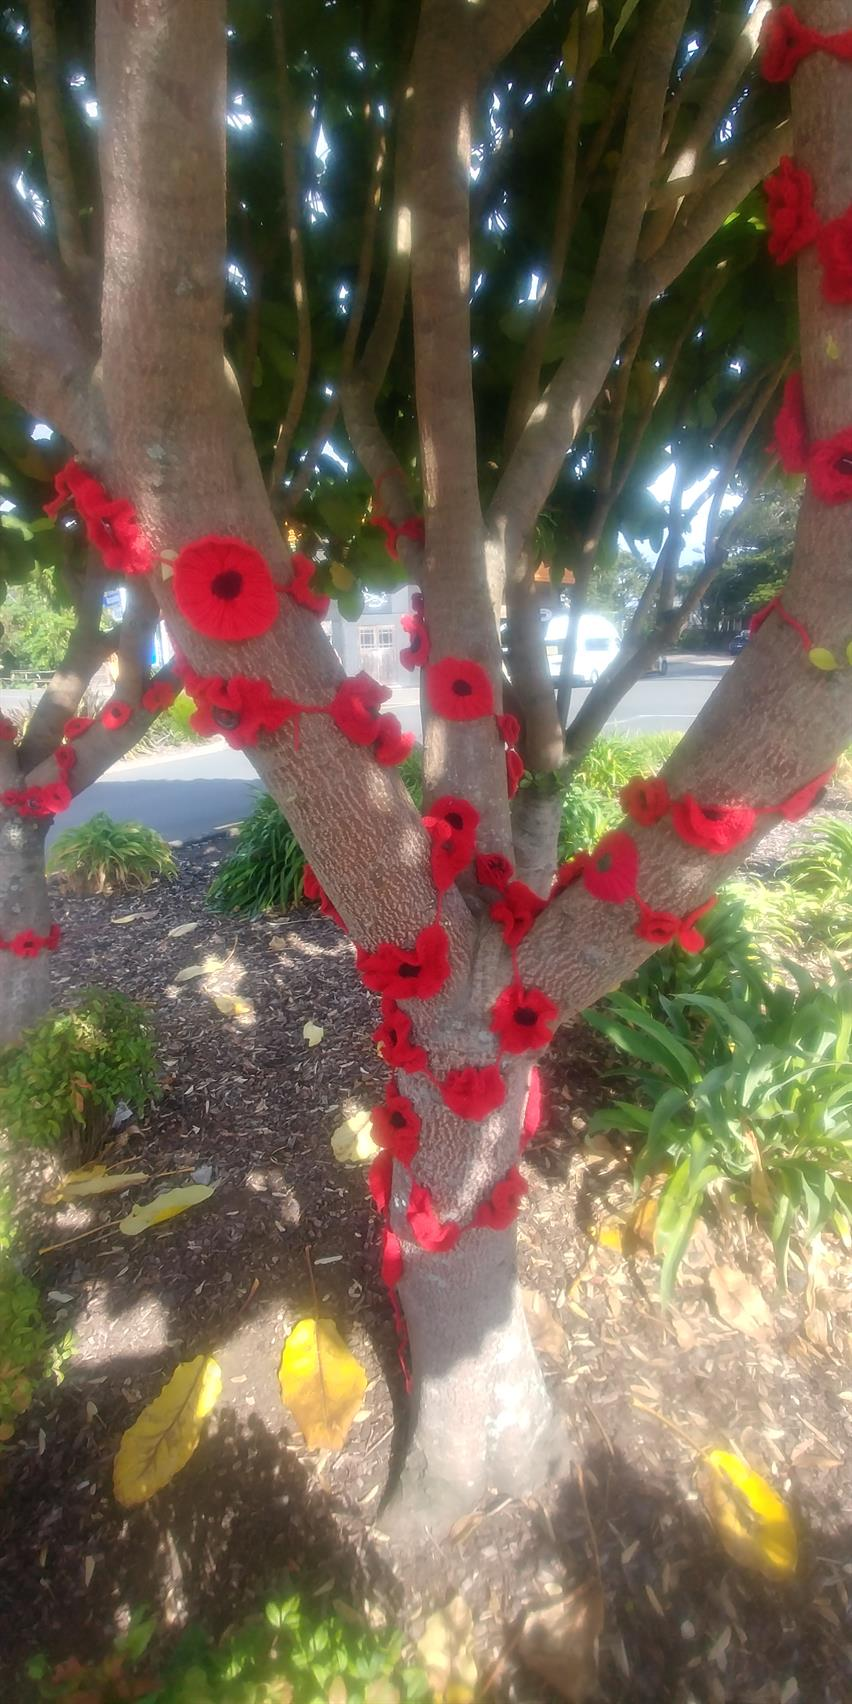 Raglan Poppy Tree 2018 - image supplied by Rodger Gallagher